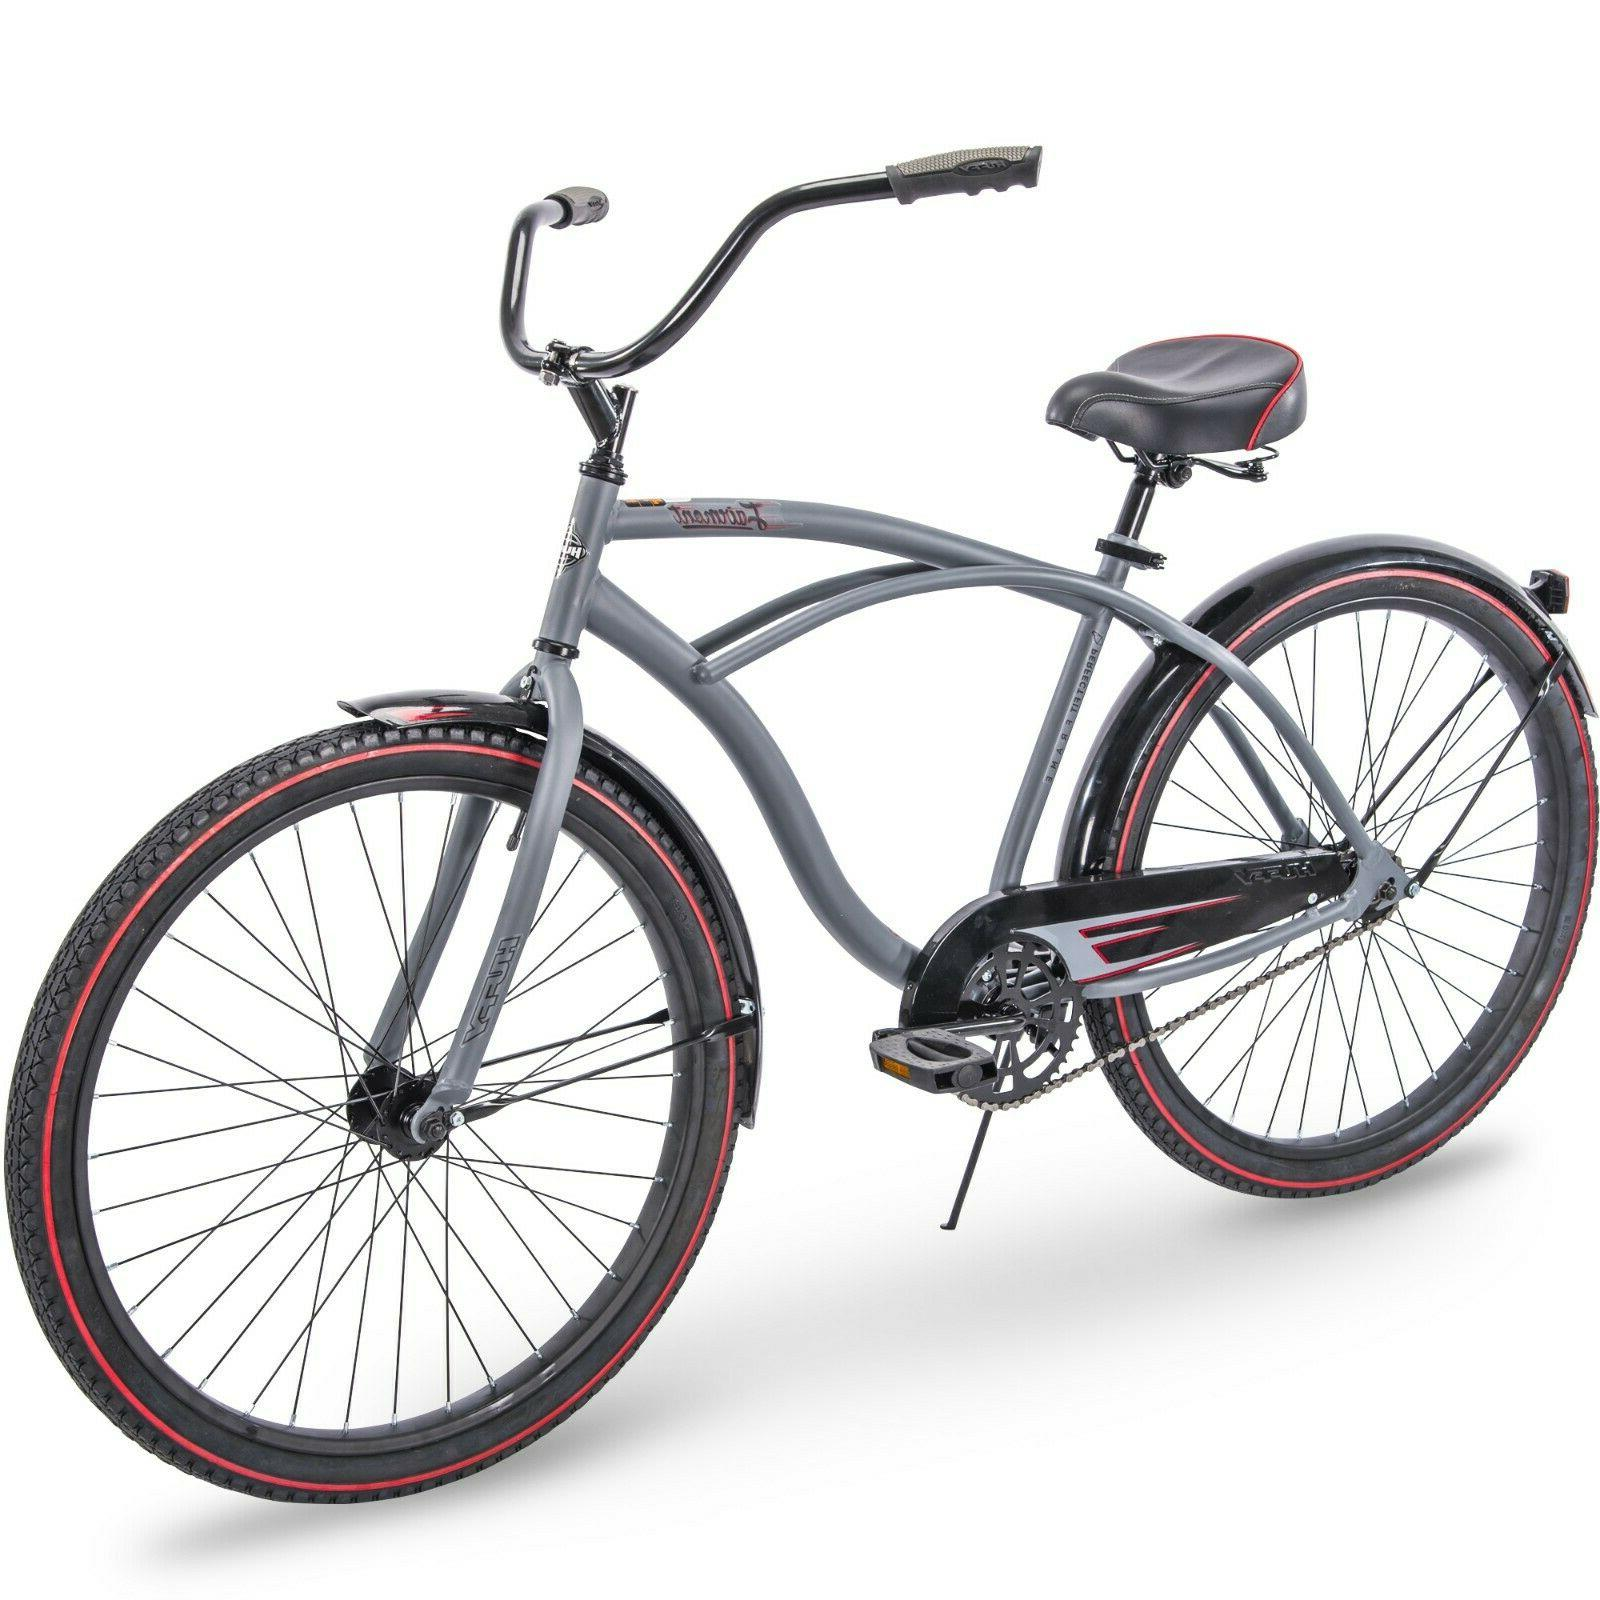 Huffy Adult Cruiser Bikes 24 or 26 inch Single Speed NEW